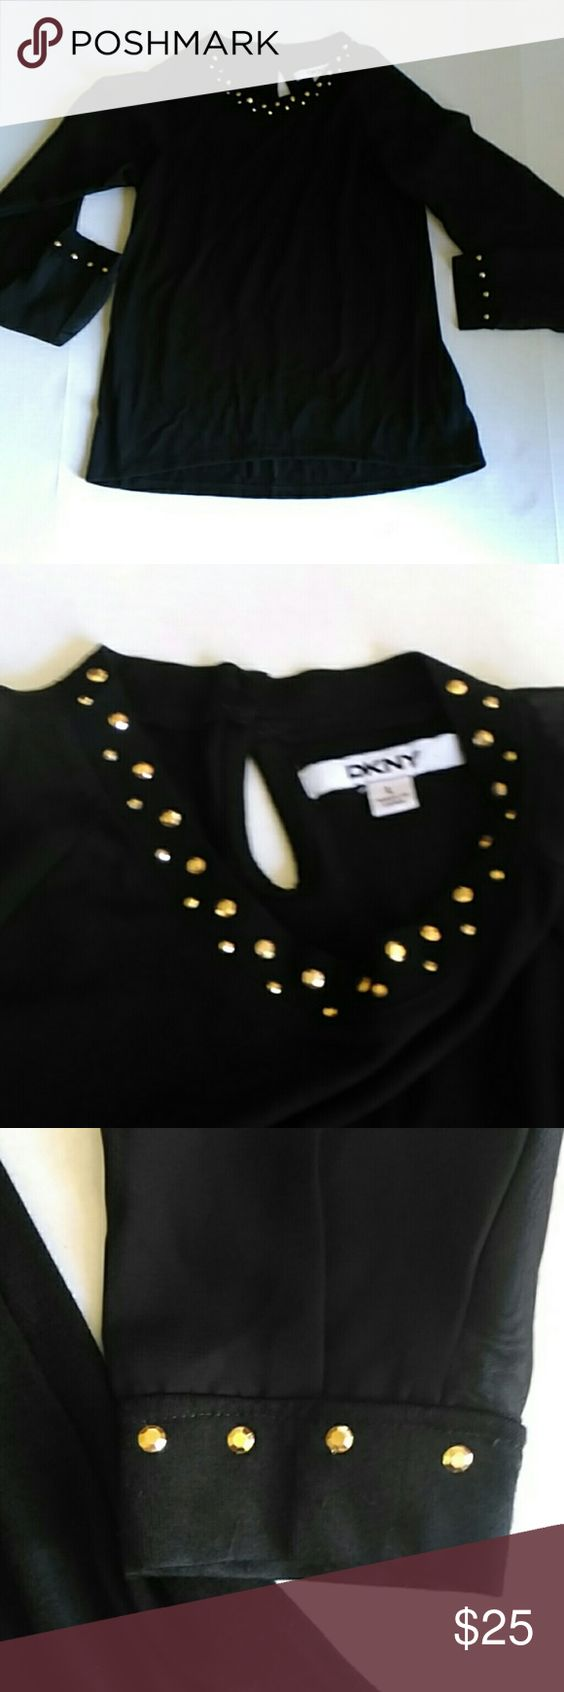 DKNY black top with gold rhinestones DKNY black long sleeve top with gold rhinestones around the neck in front and at the cuffs of the arms. The arms are also sheer. Keyhole cut out in back as shown in last pic. In great condition. No rips stains or tears. Size large. Chest measures approx 14 inches across laying flat. DKNY Tops Blouses